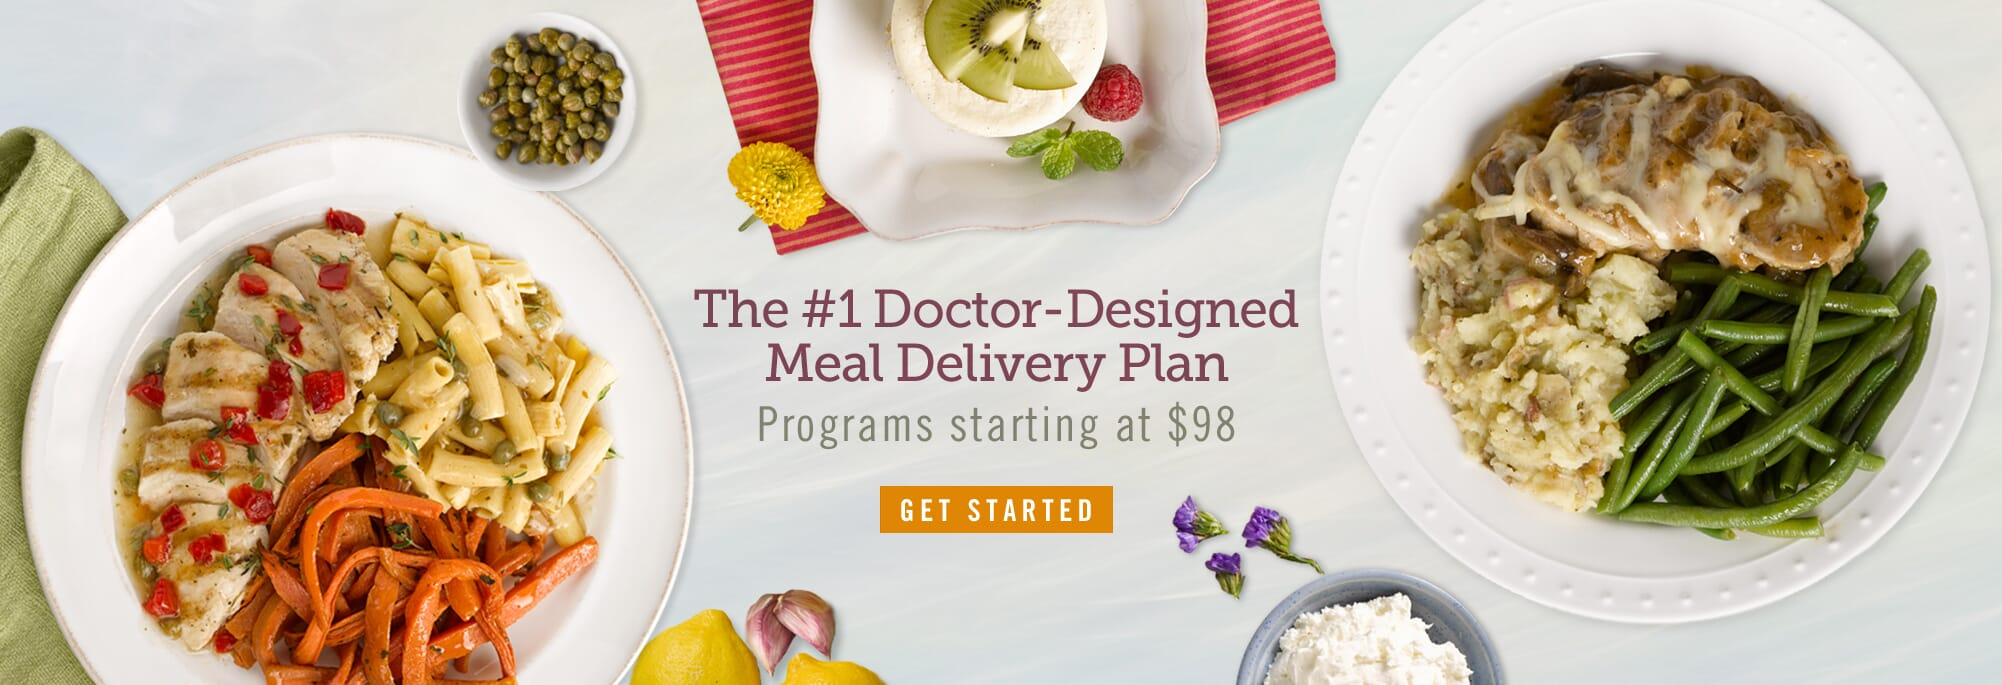 Over 150 delicious doctor-designed, chef-prepared entrees. Real results, no contracts. Your first week as low as $98 plus free shipping!